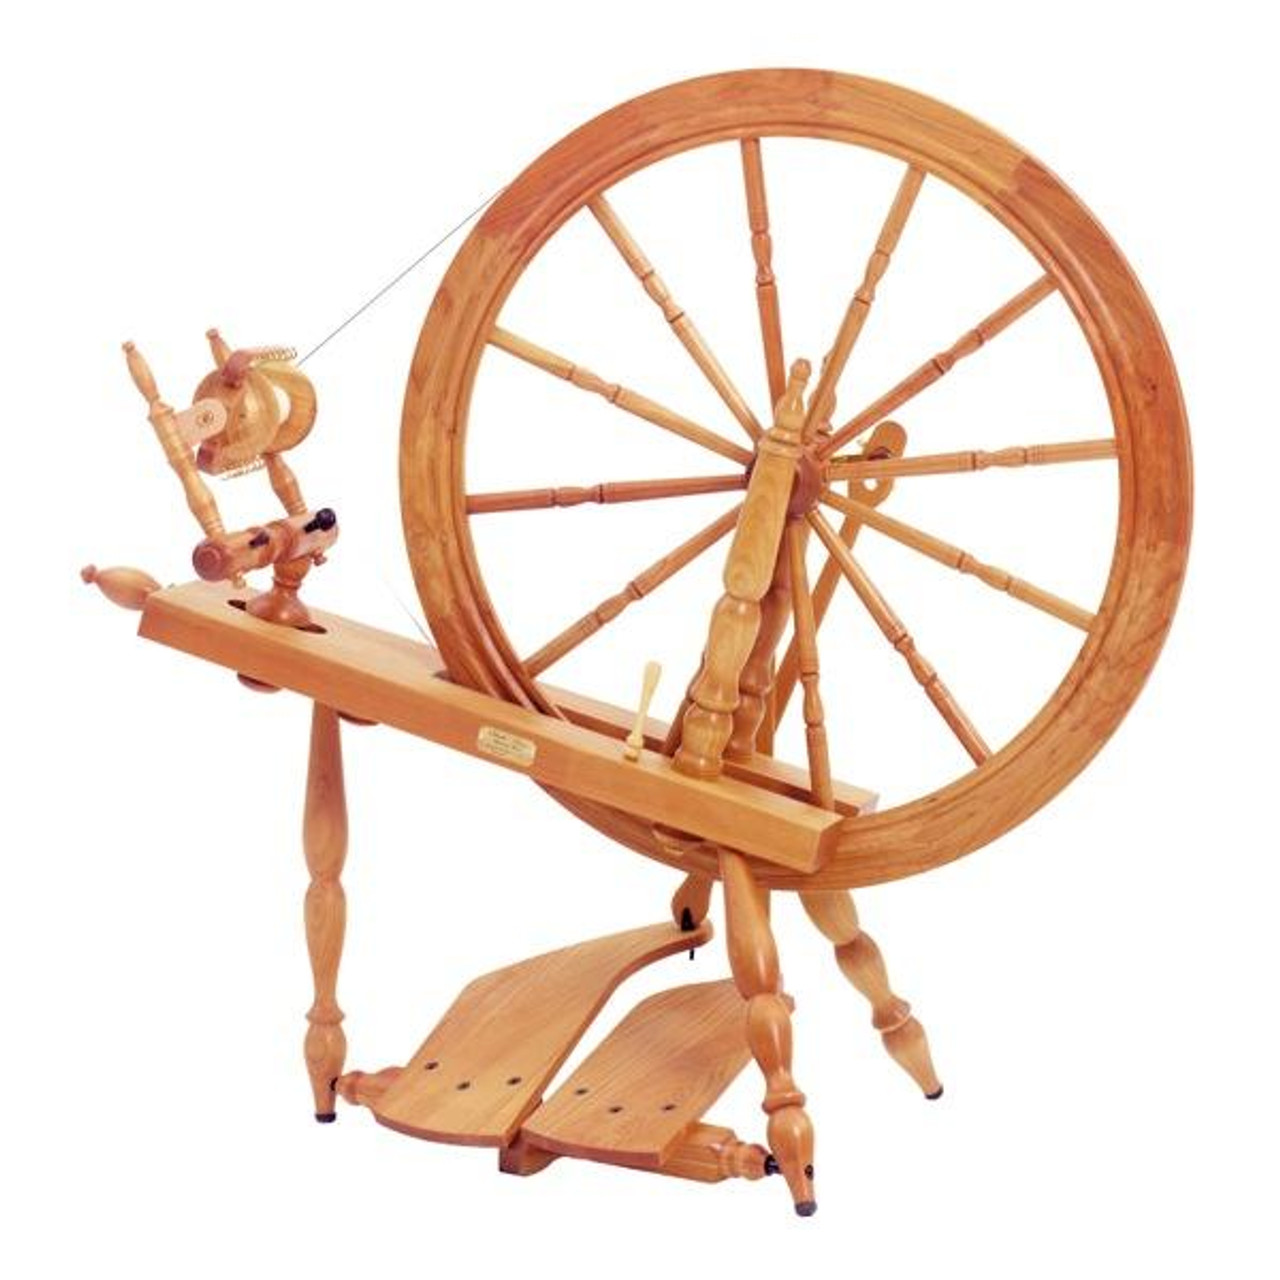 Schacht Reeves Spinning Wheel - Double Treadle - Cherry